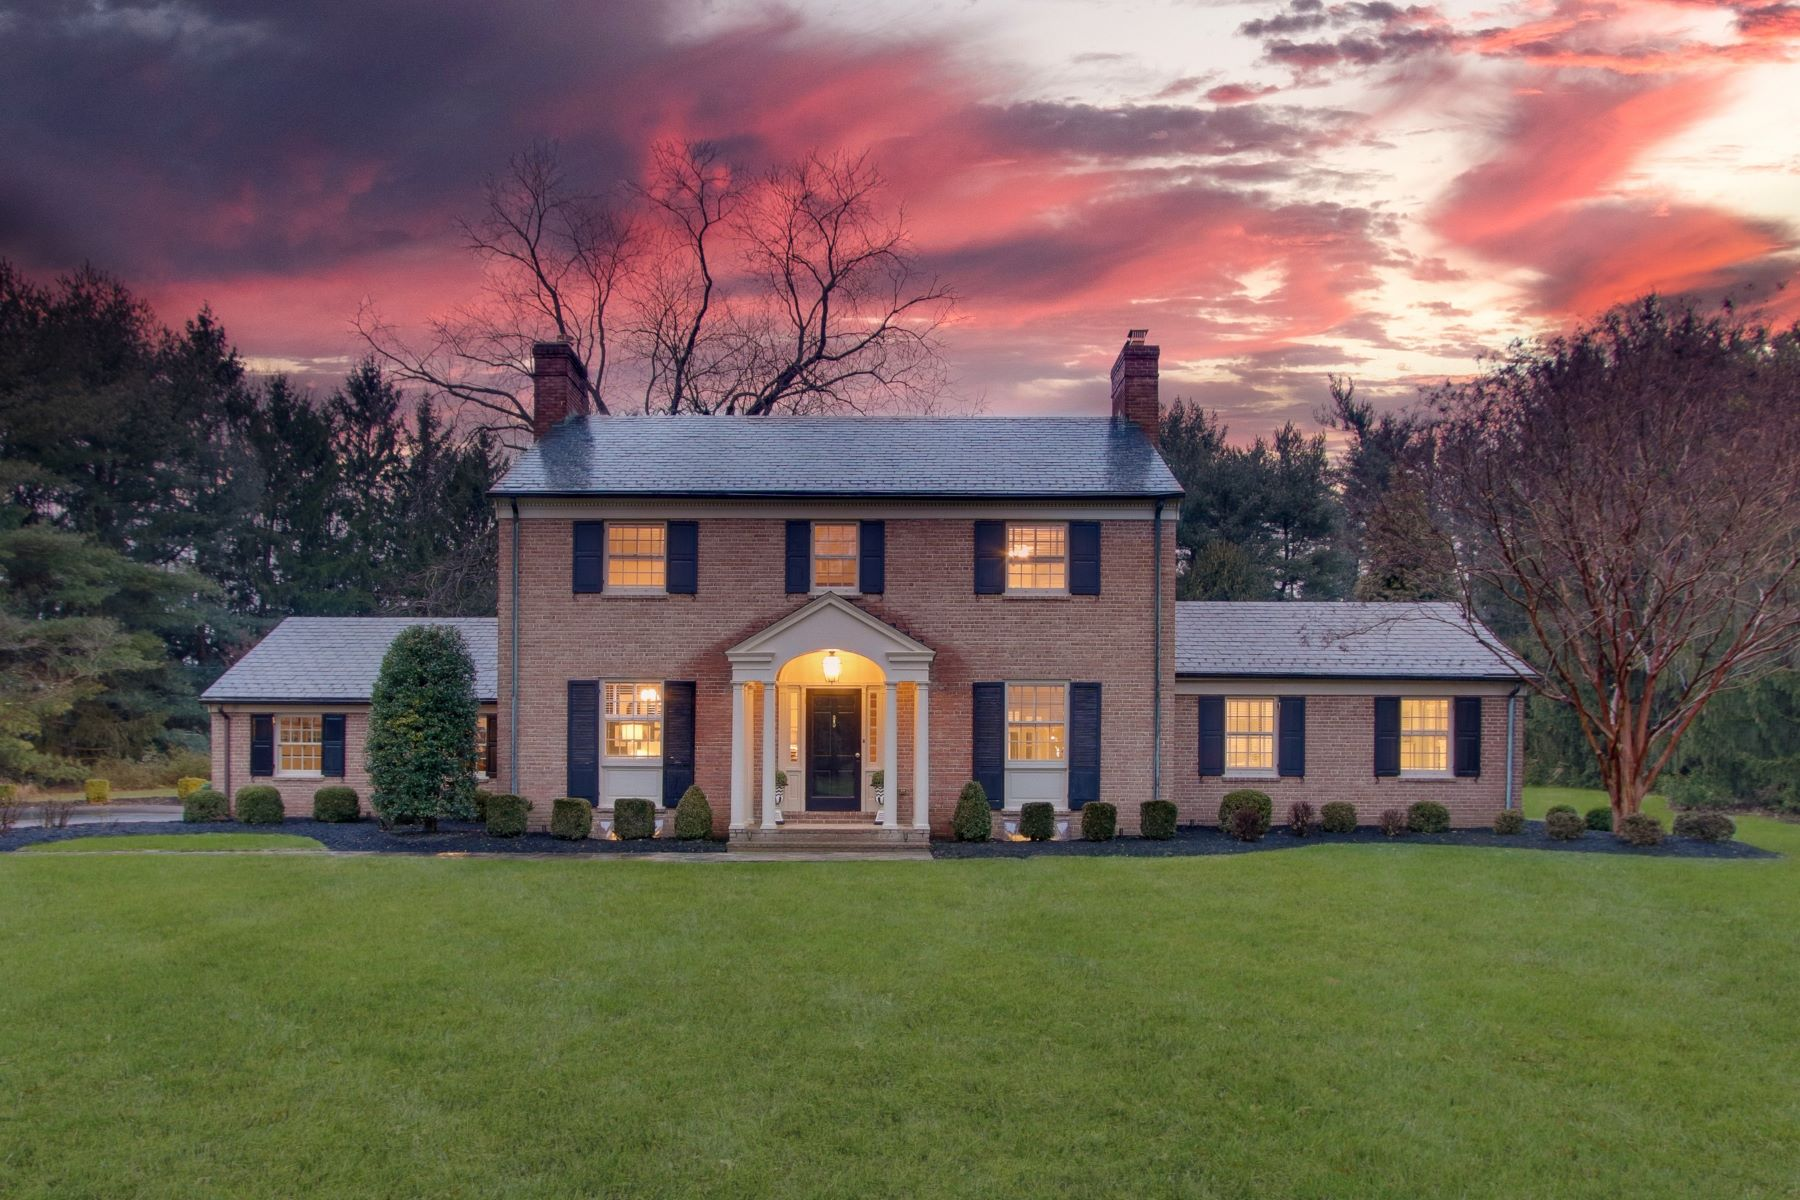 Single Family Homes for Active at Wakefield 2210 Boxmere Road Lutherville Timonium, Maryland 21093 United States